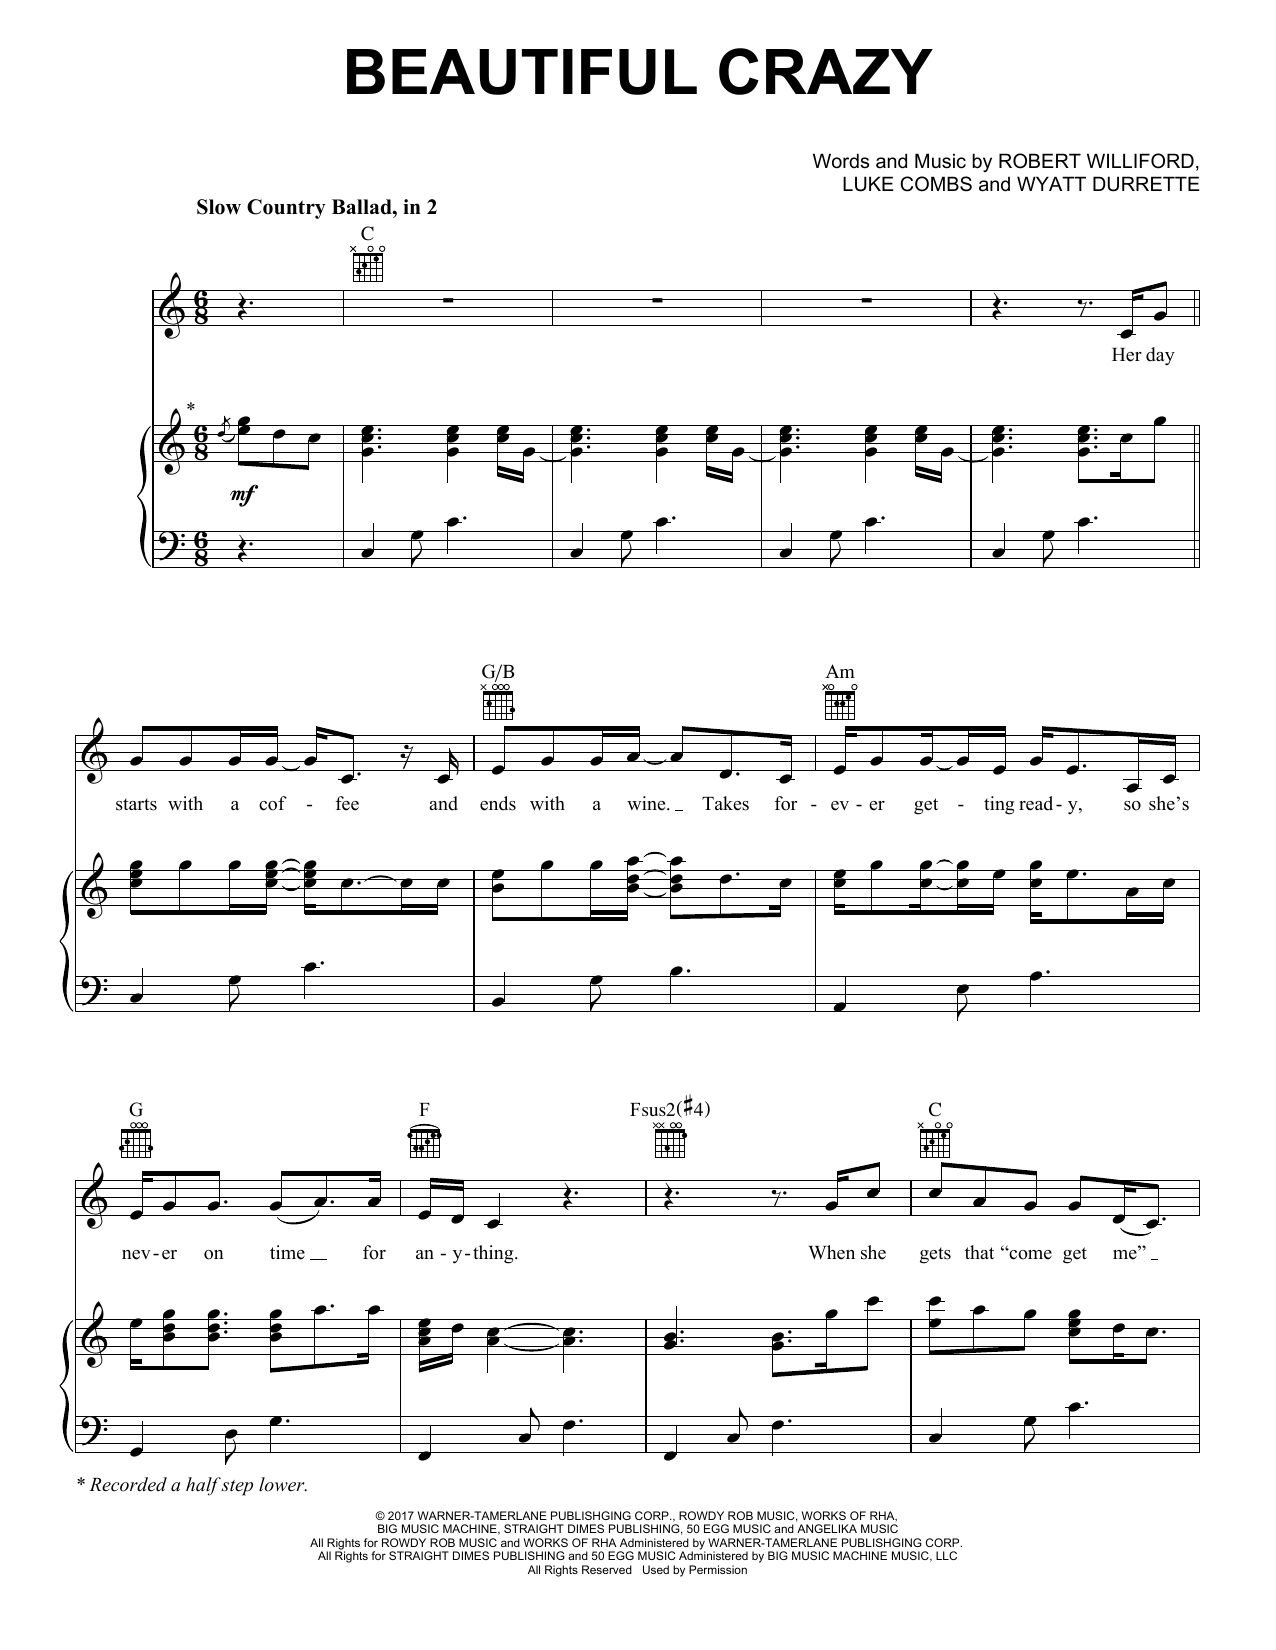 Luke Combs Beautiful Crazy sheet music notes and chords. Download Printable PDF.